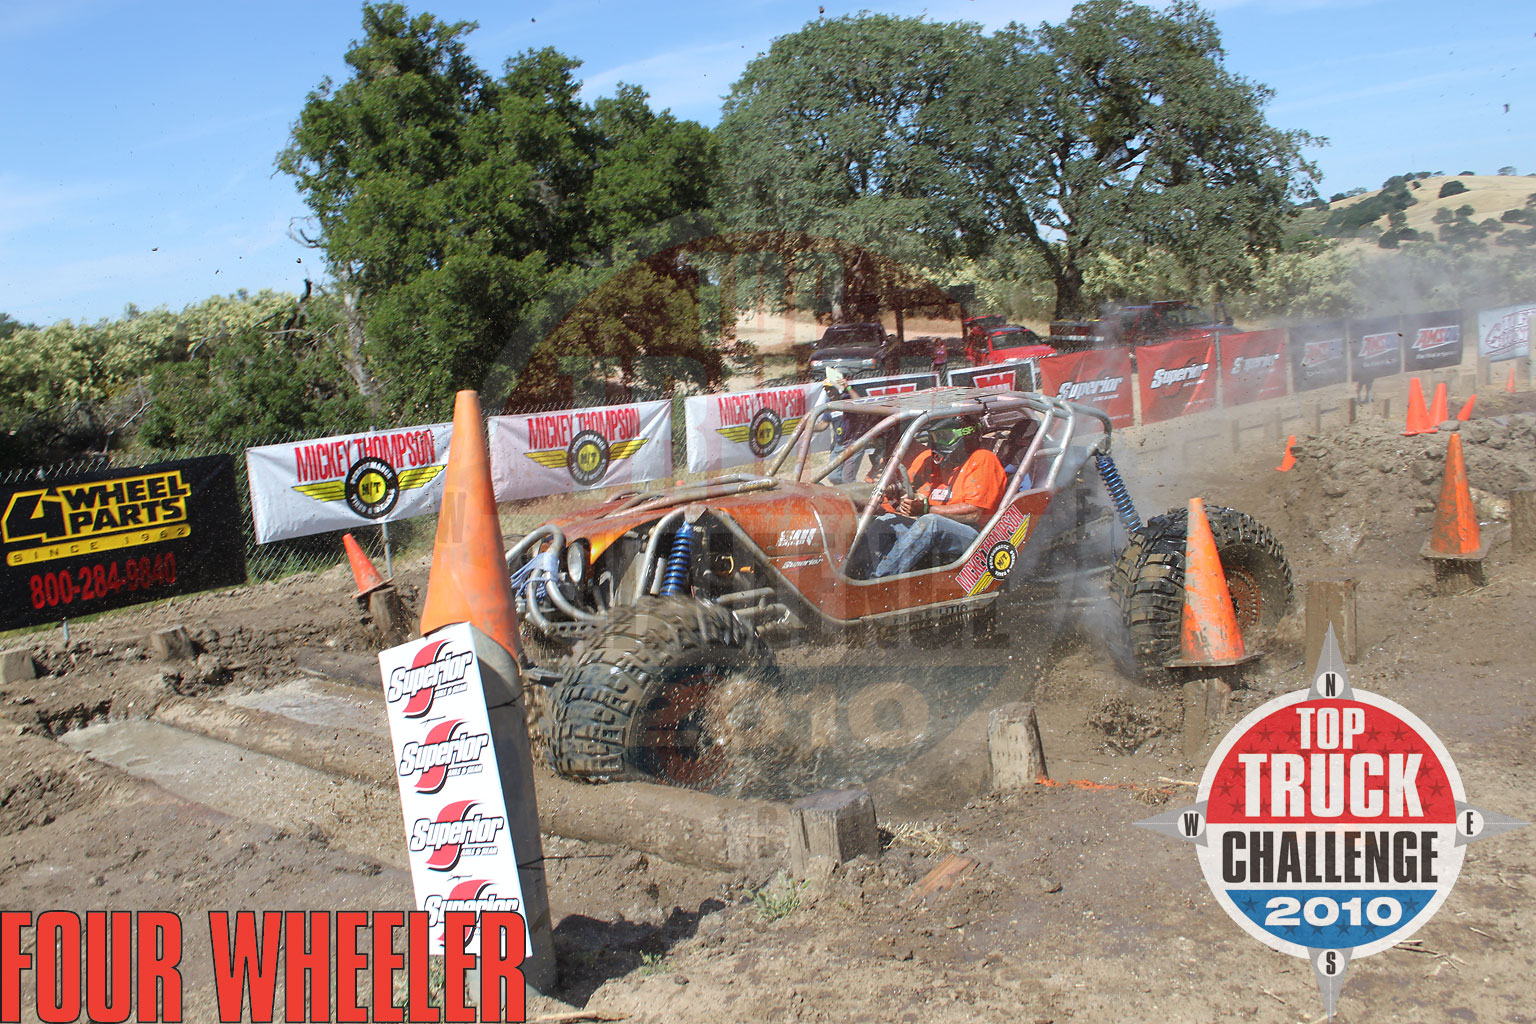 2010 Top Truck Challenge Frame Twister Leo Kuether 2007 Cole Works Fat Girl Buggy